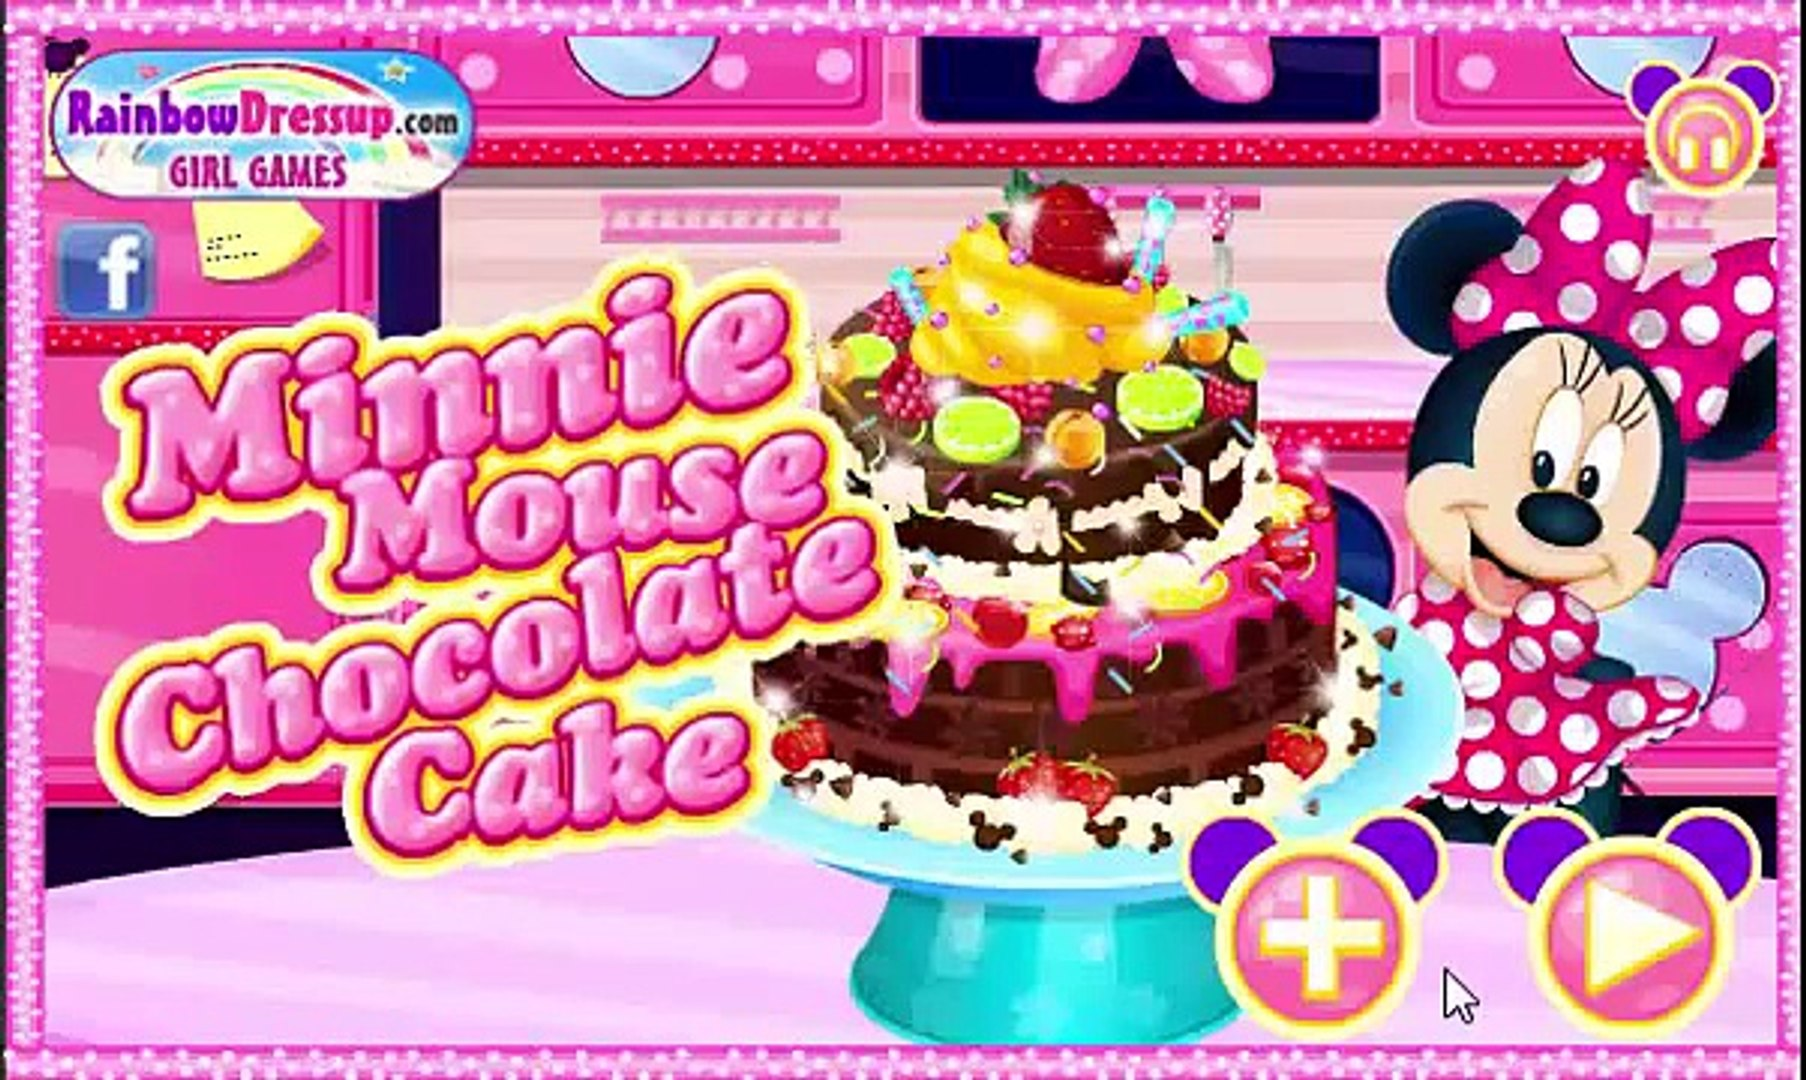 Minnie Mouse Chocolate Cake Mickey Mouse Full Game Episodes In English Video Dailymotion